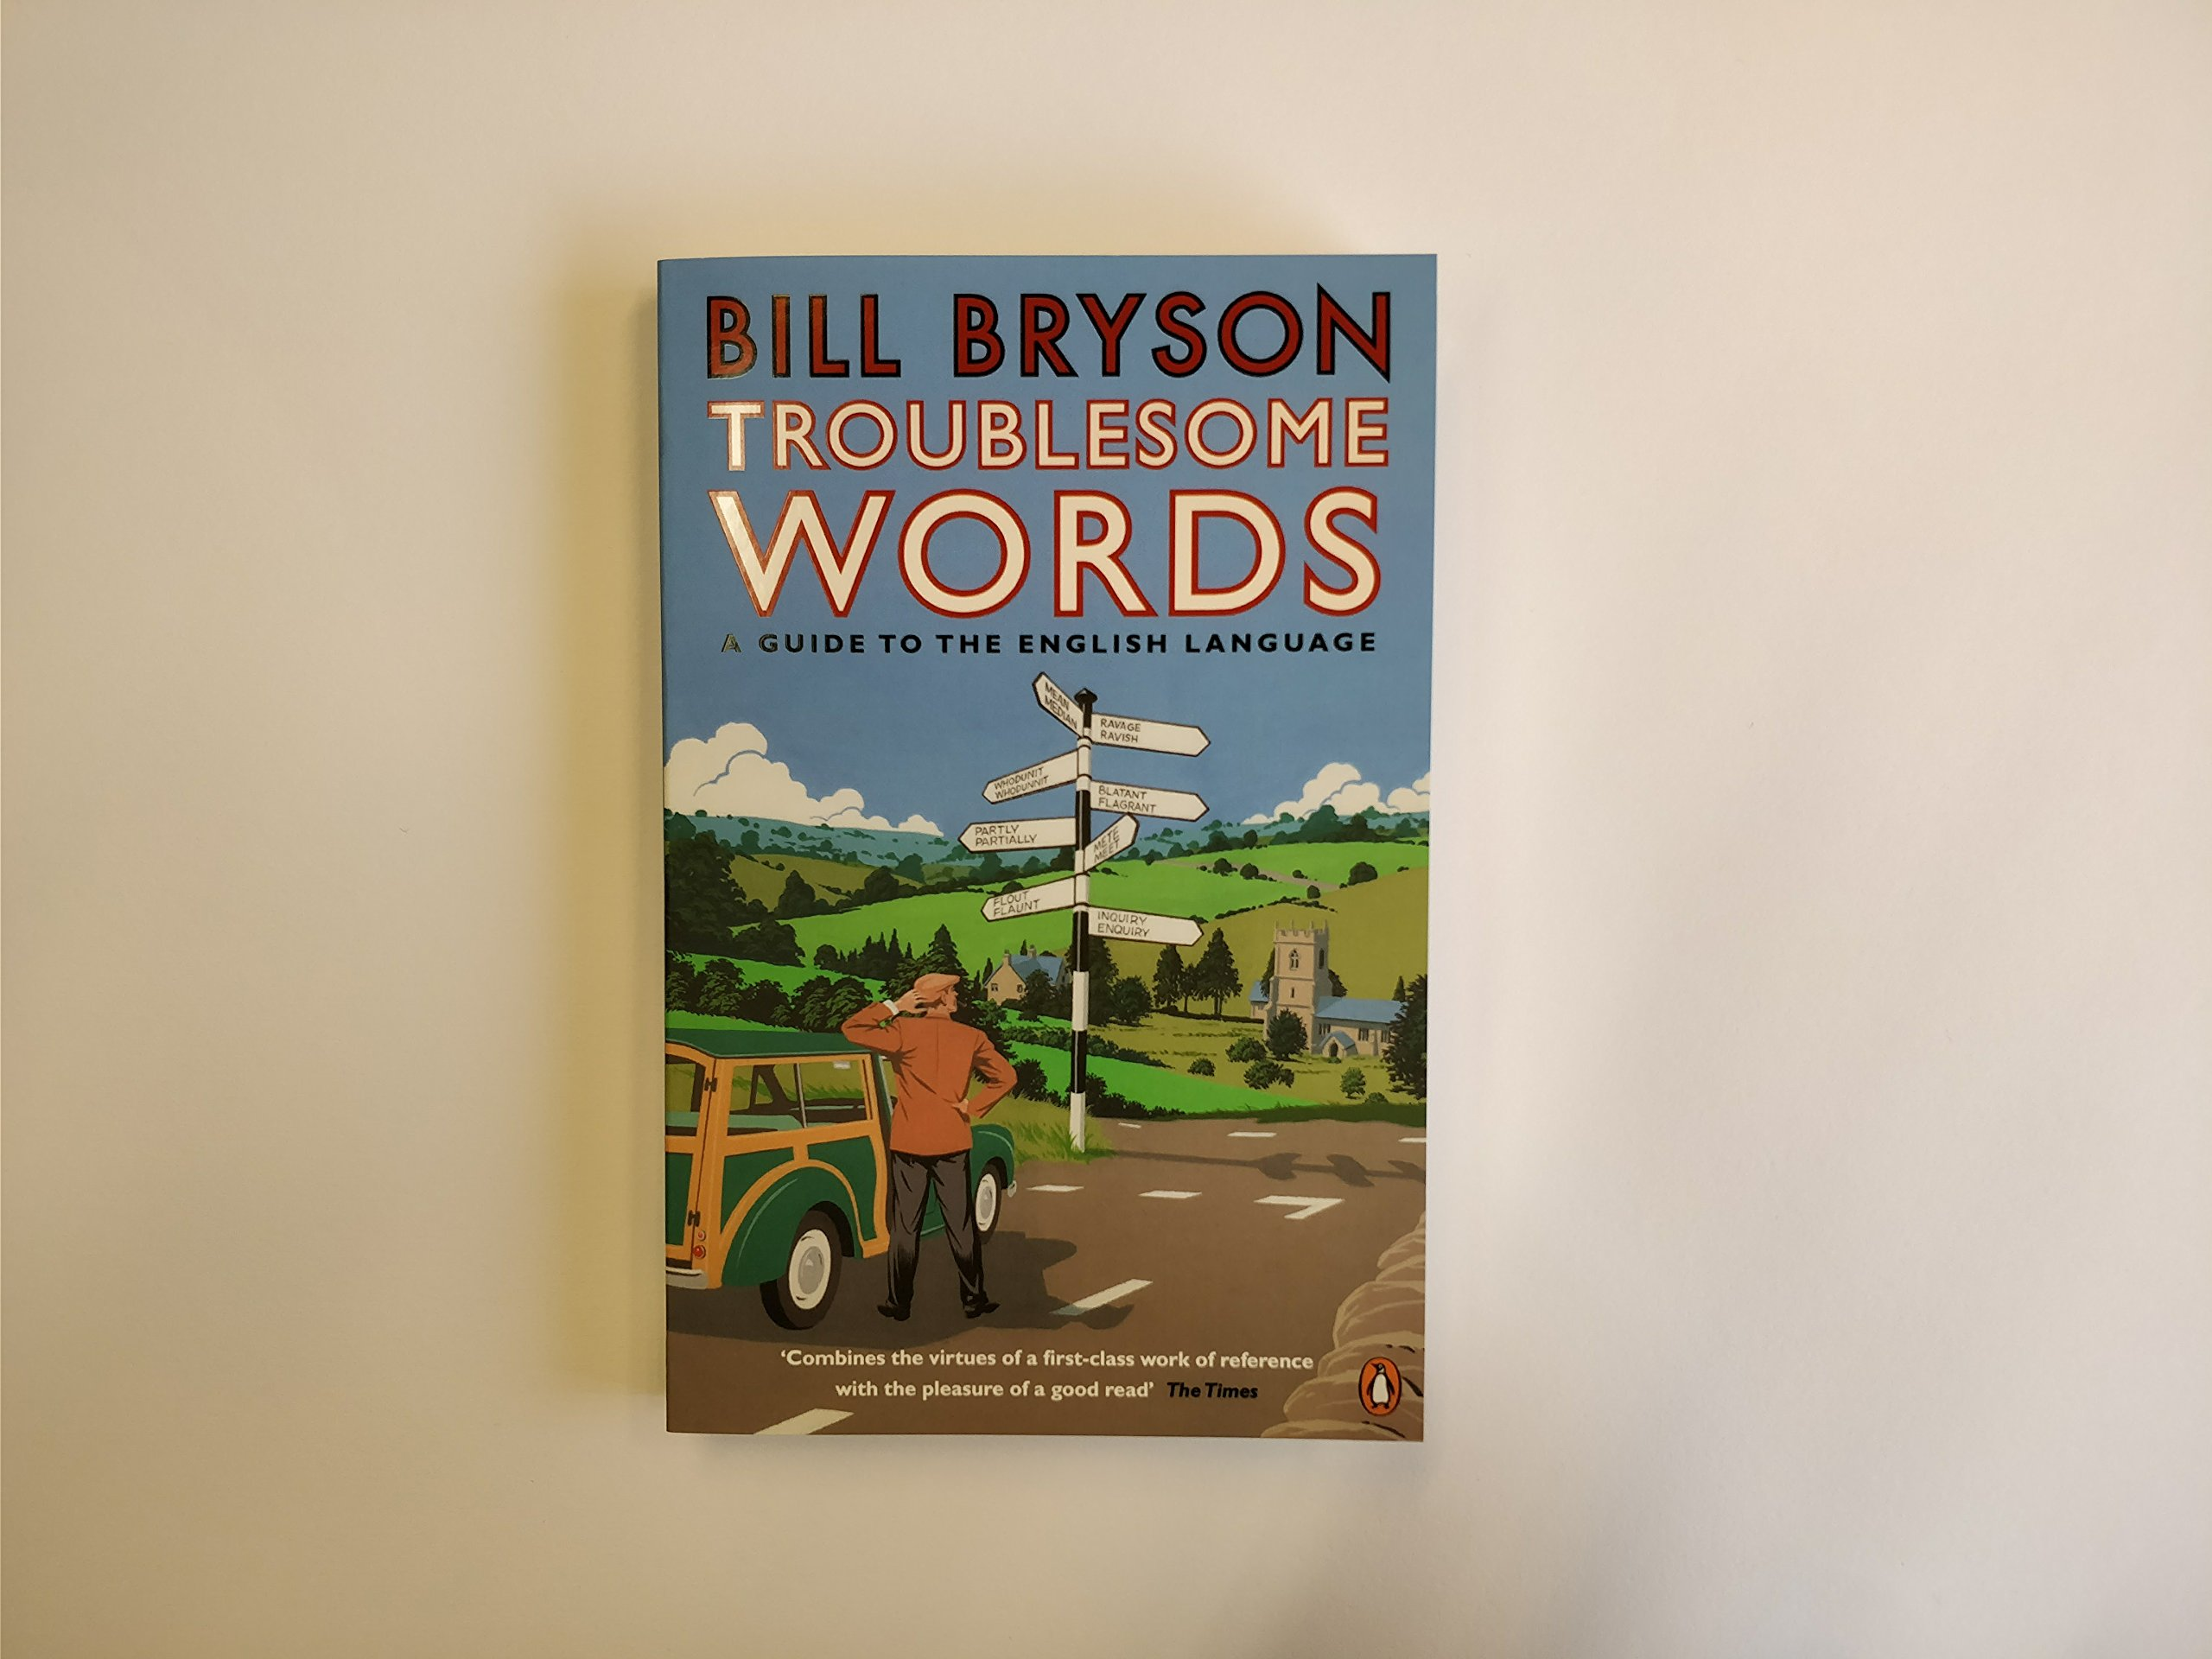 Troublesome words amazon bill bryson 9780141040394 books solutioingenieria